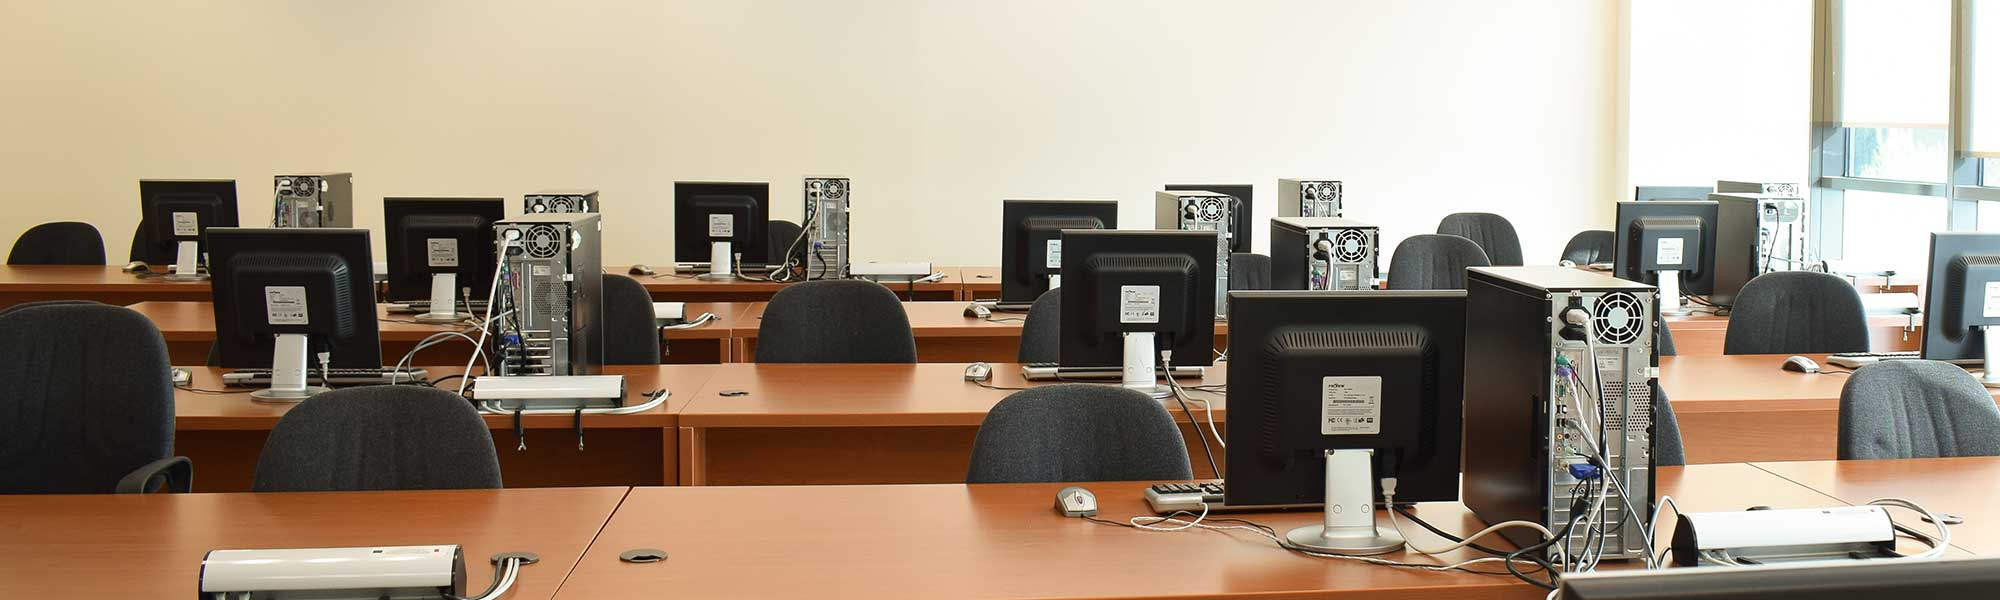 Facilities at ICT